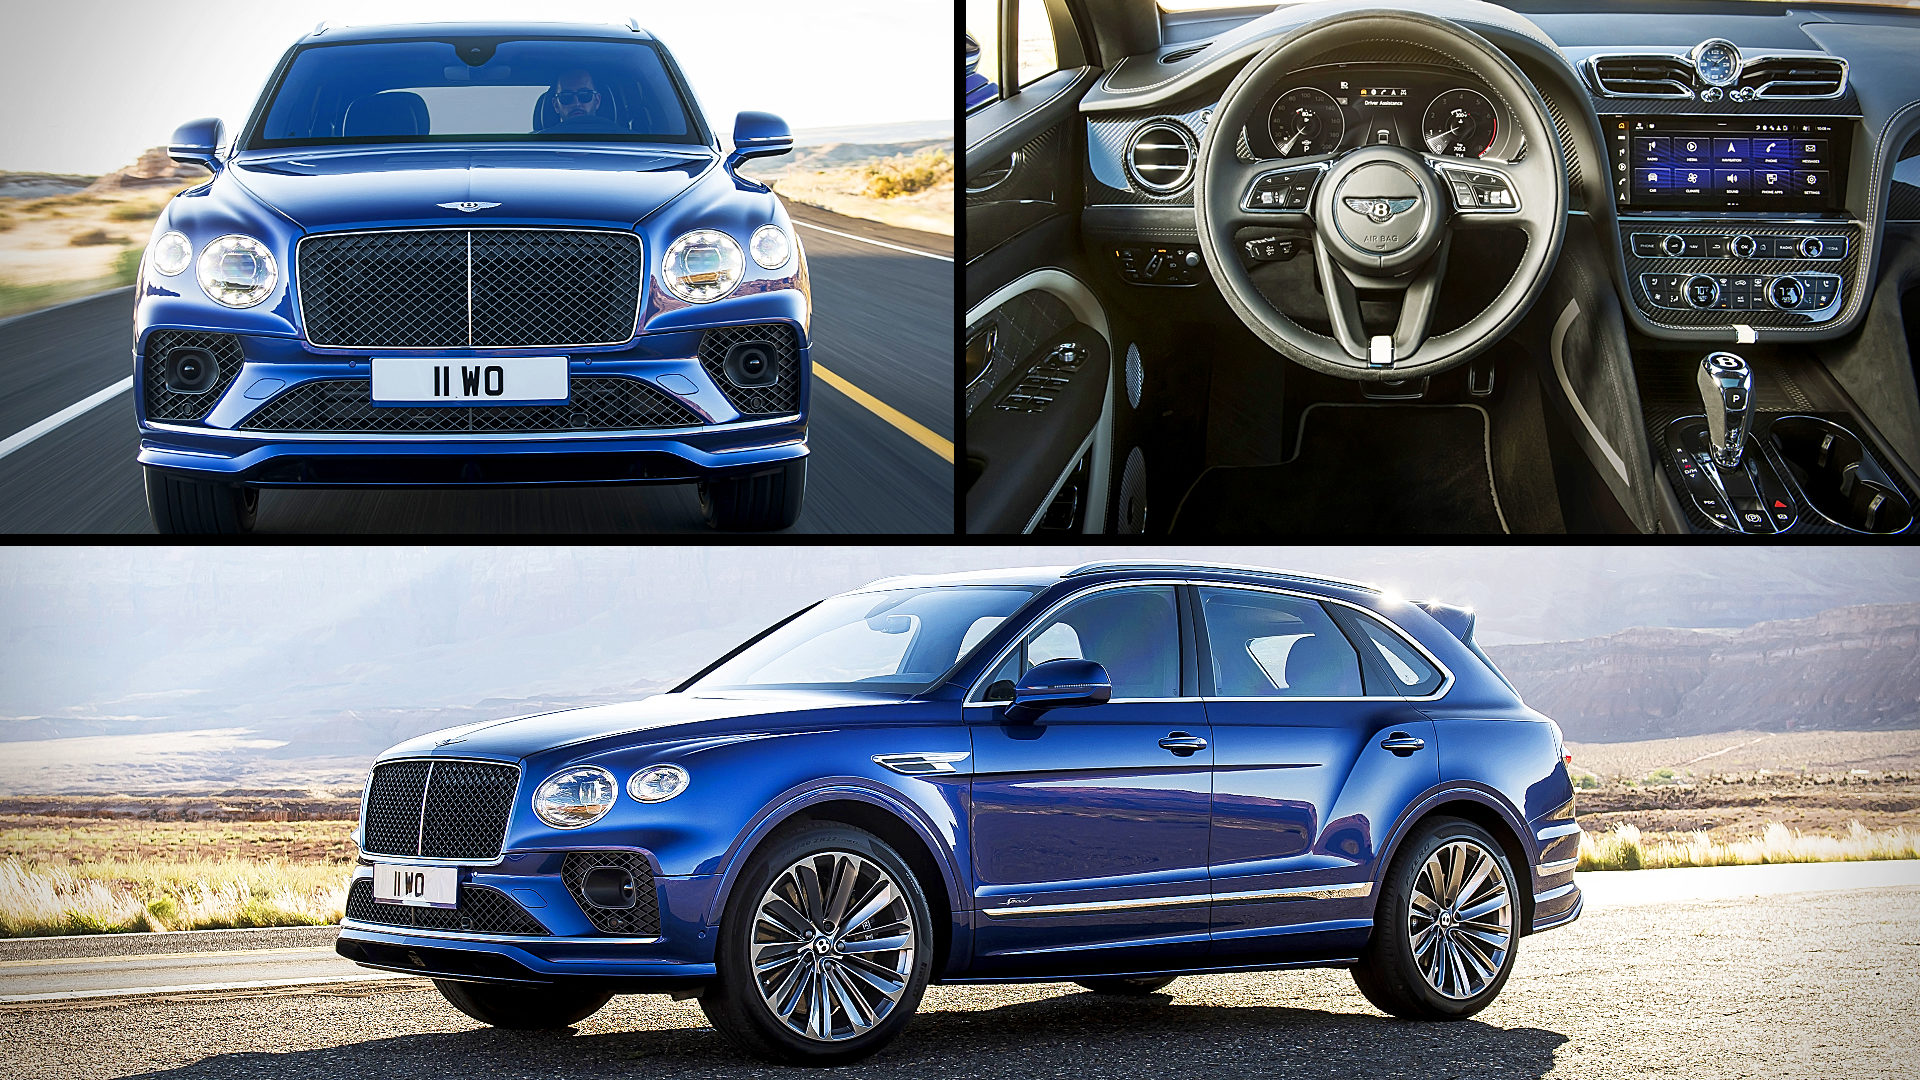 2021 Bentley Bentayga Speed Images